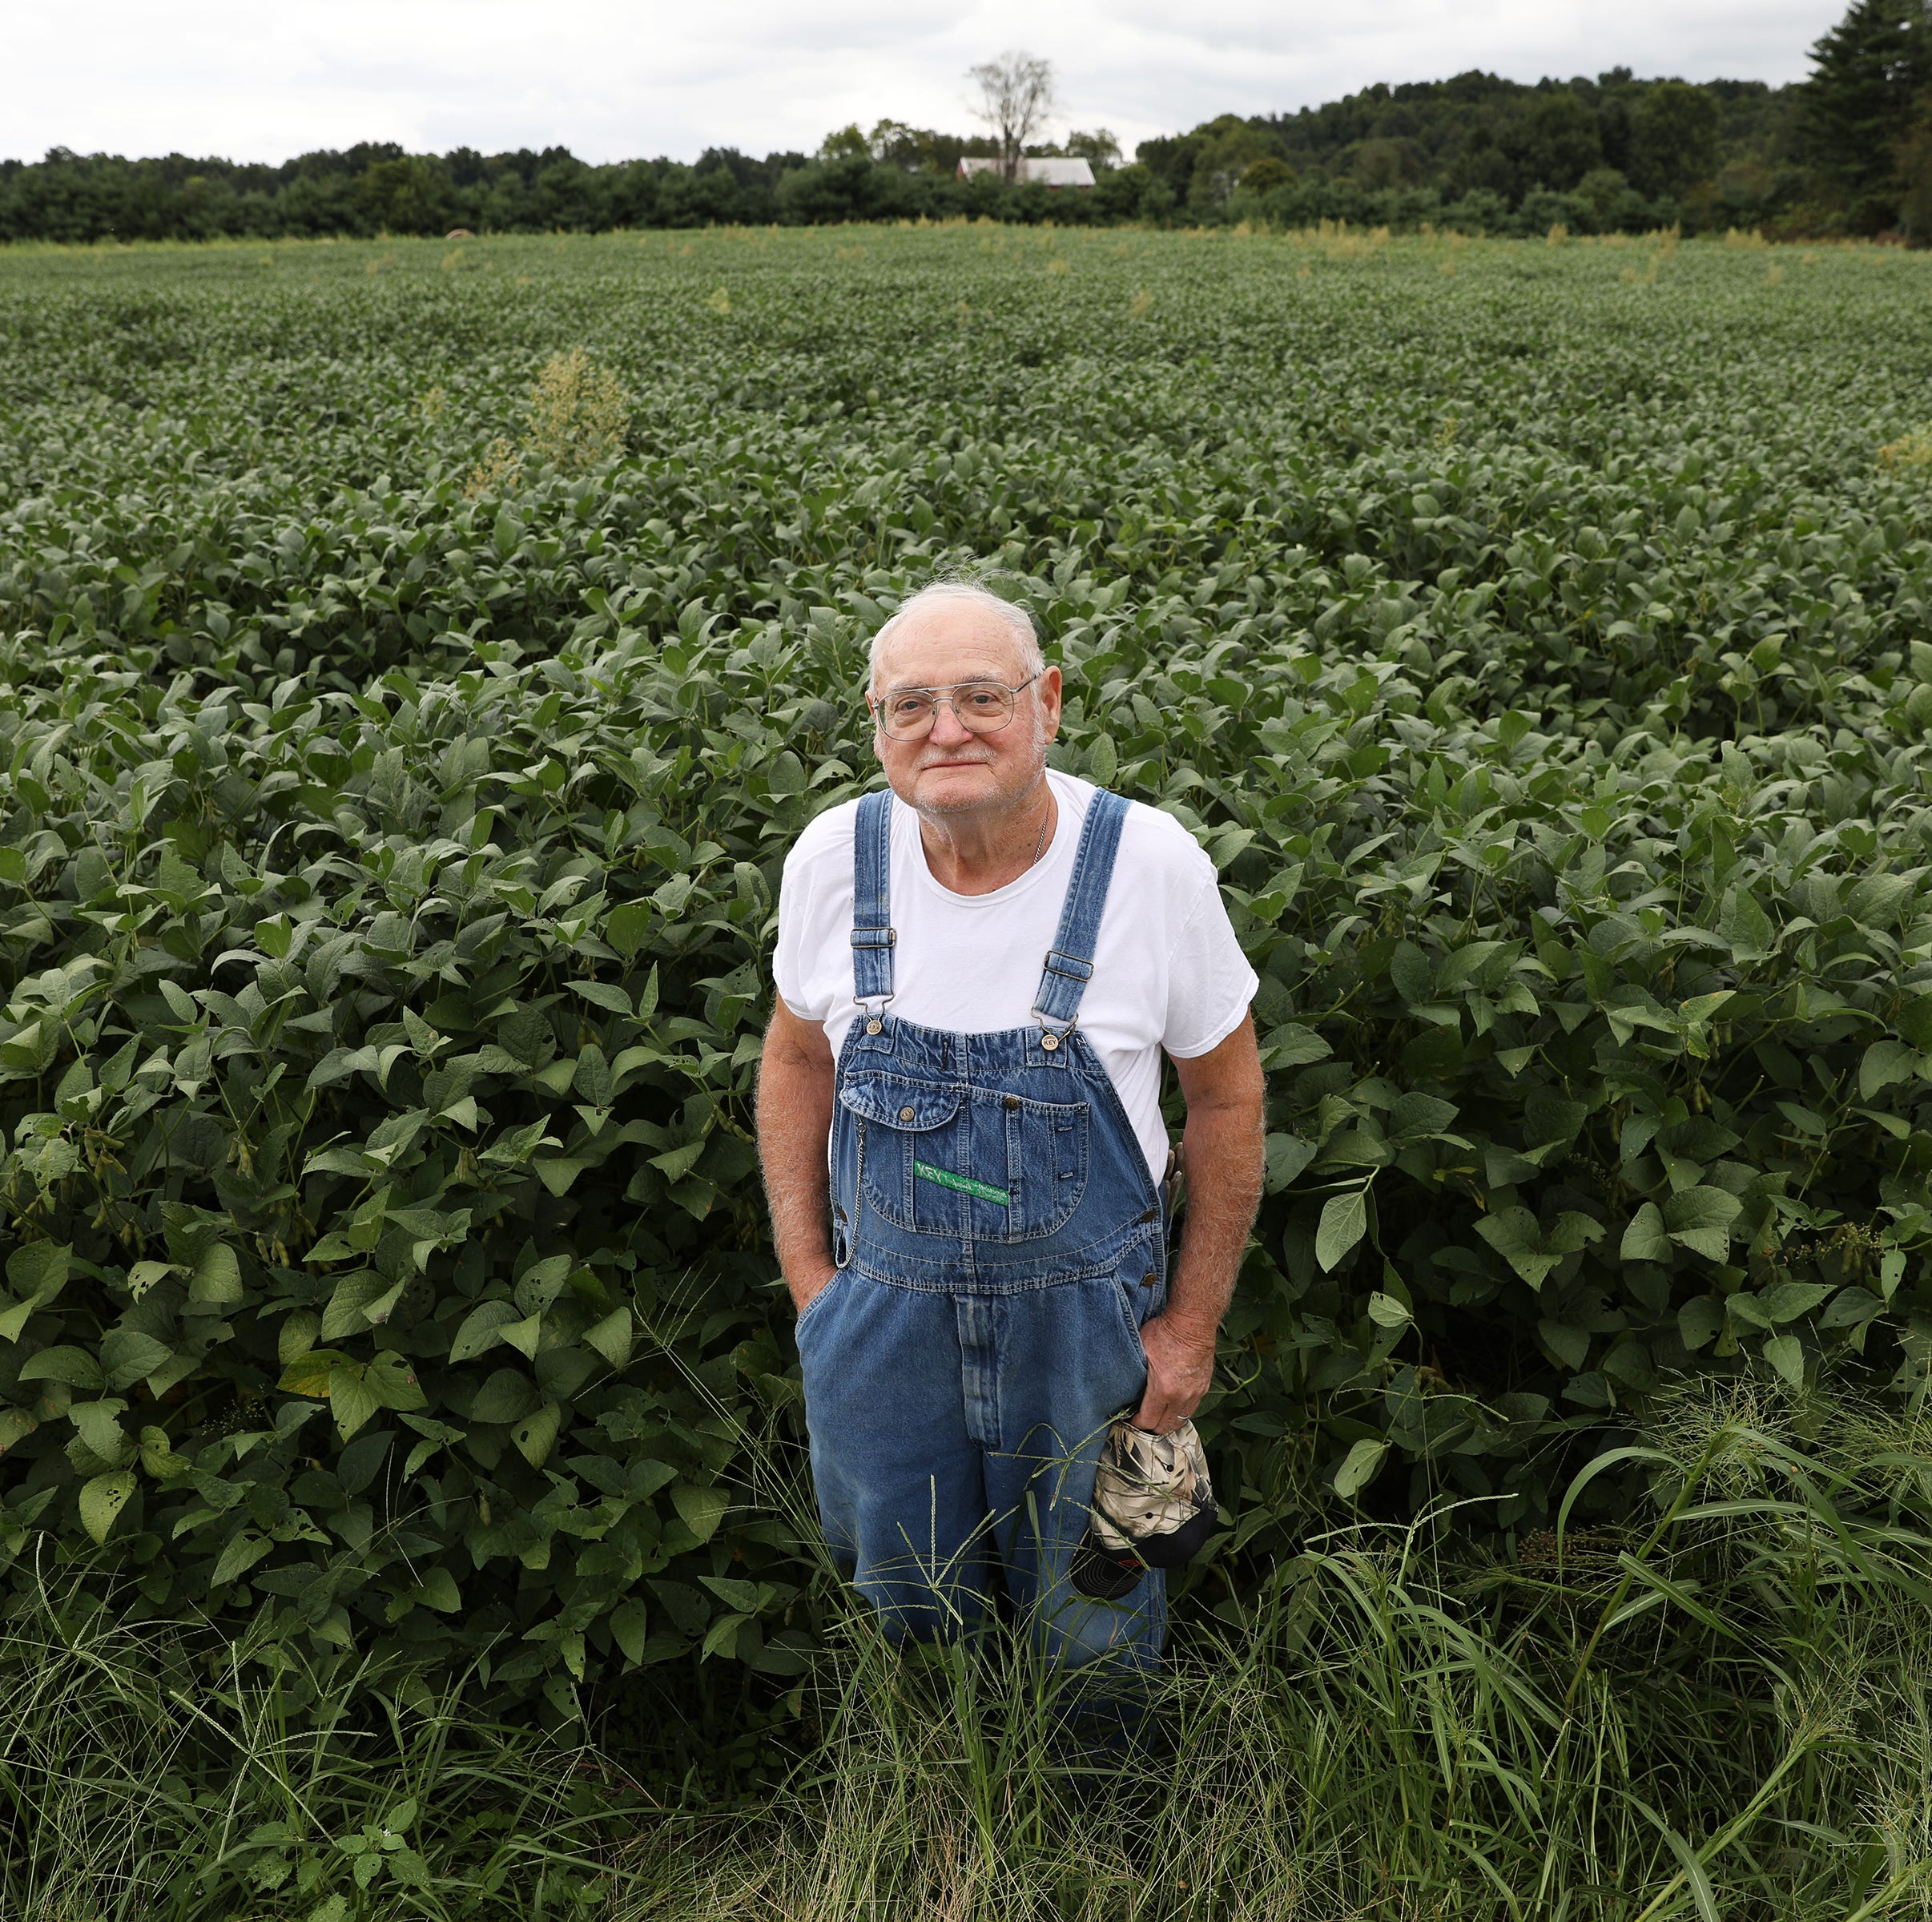 School purchase marks end of century of farming for previous owner